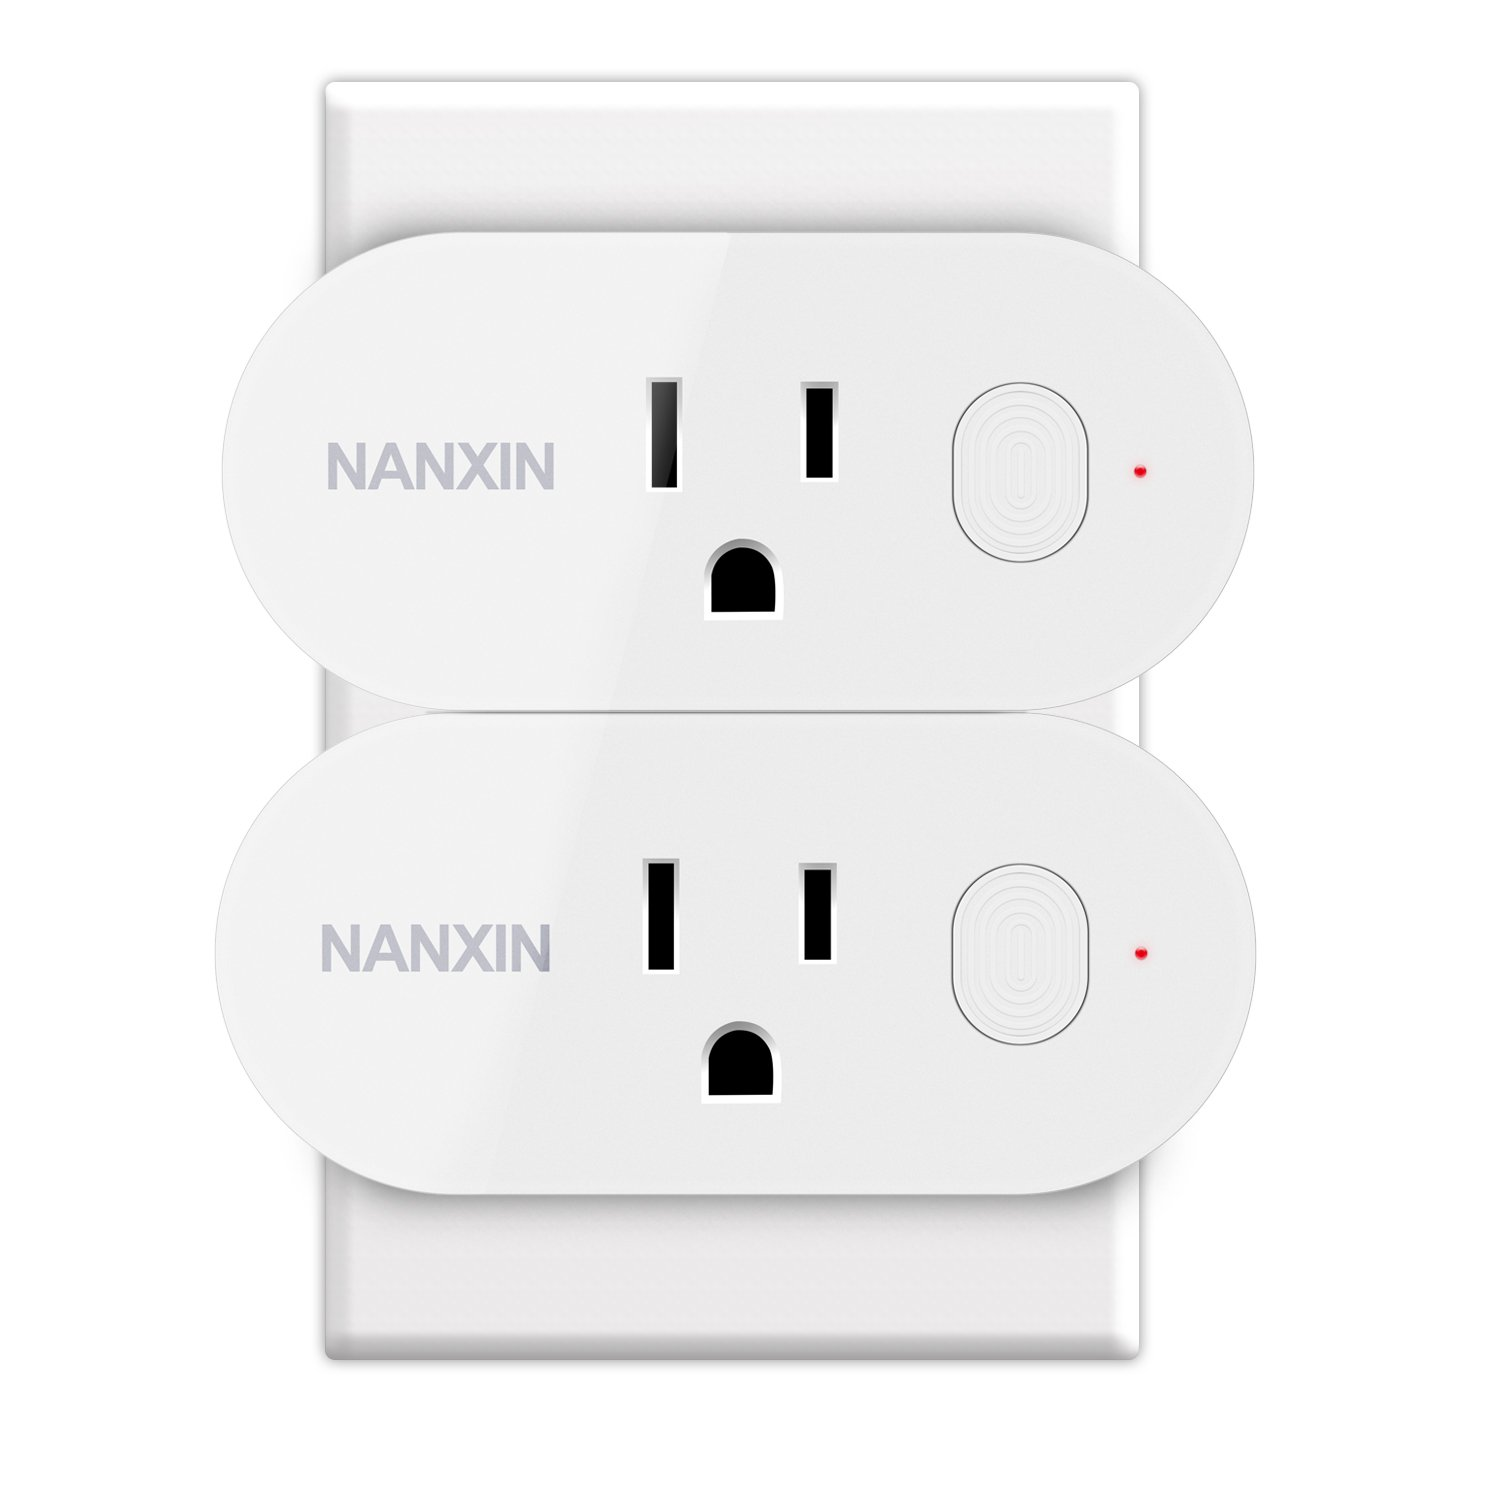 Alexa Smart Wifi Plug - NANXIN Smart Plug Wifi Socket Outlet, Compatible with Alexa and Google Home, 16A for Larger Appliances, Remote Control From Anywhere - 2 Pack